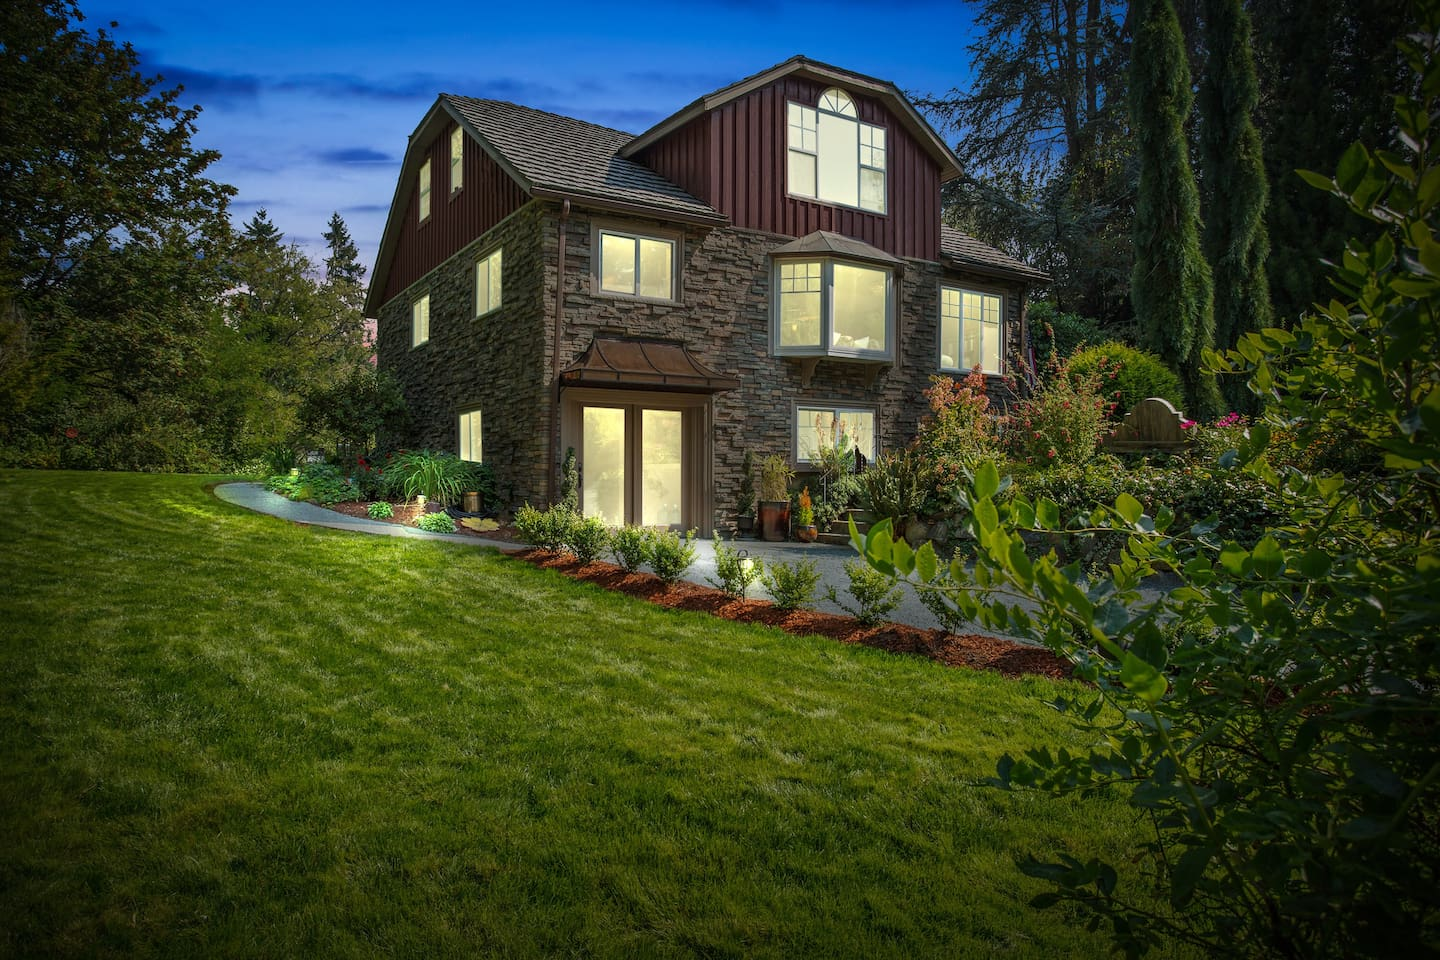 lyonswood manor gardens houses for rent in seattle washington